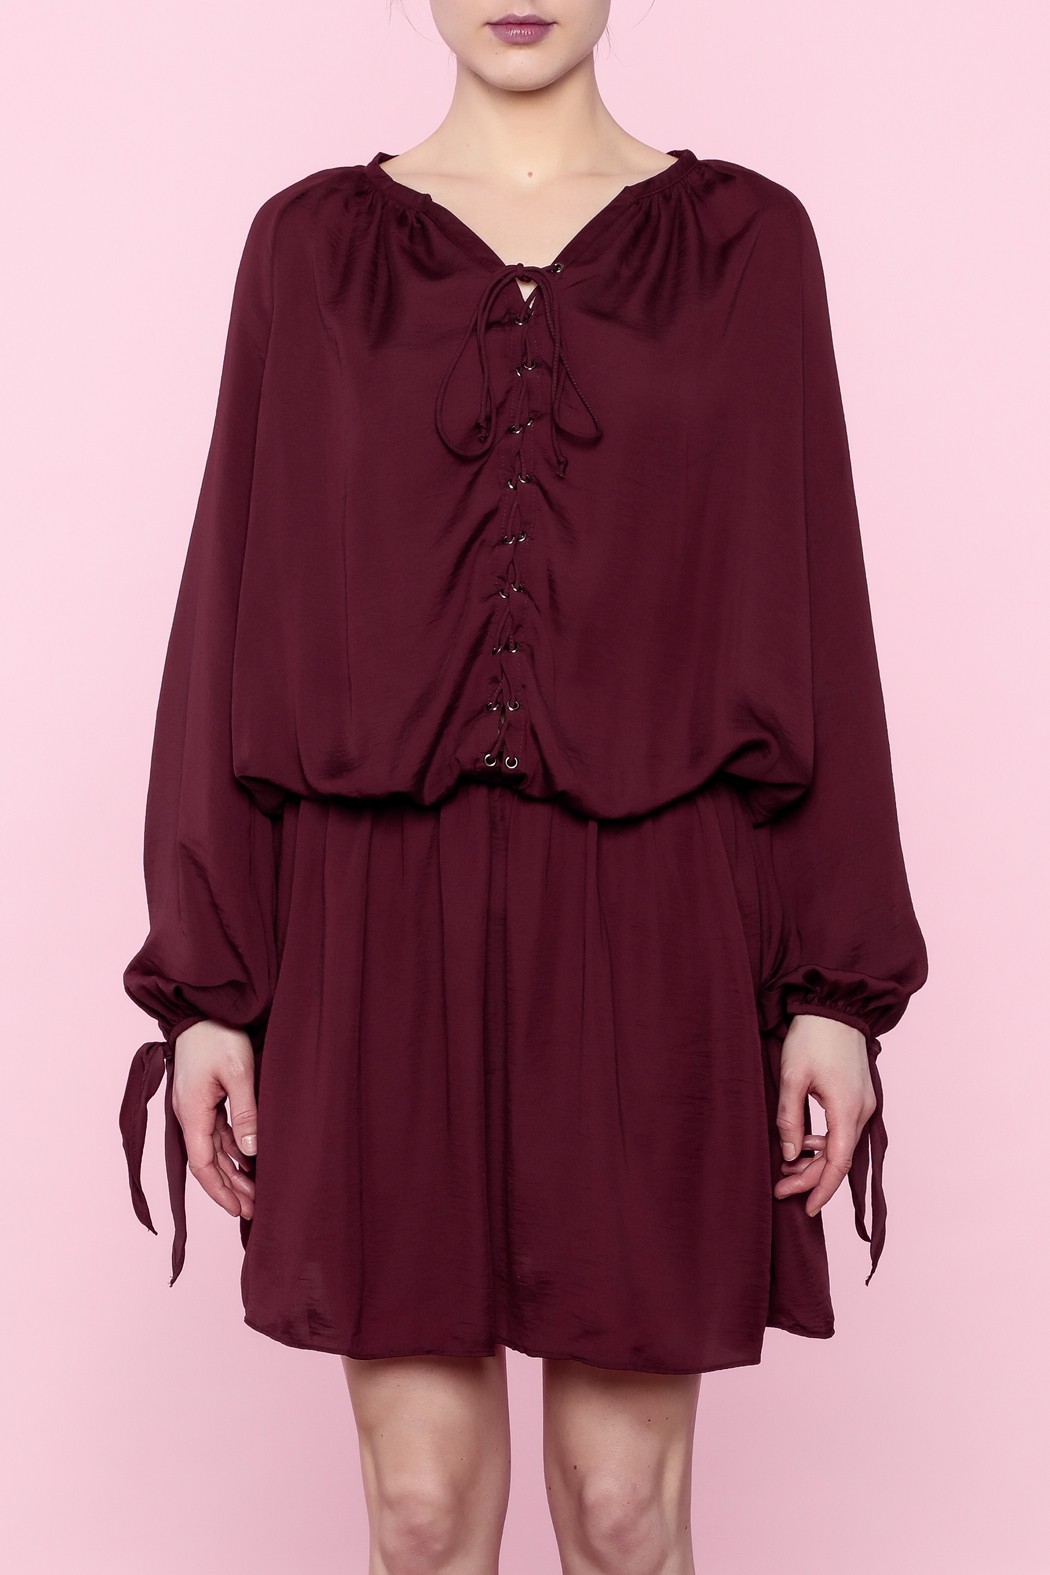 Do & Be Burgundy Lace-Up Dress - Front Full Image